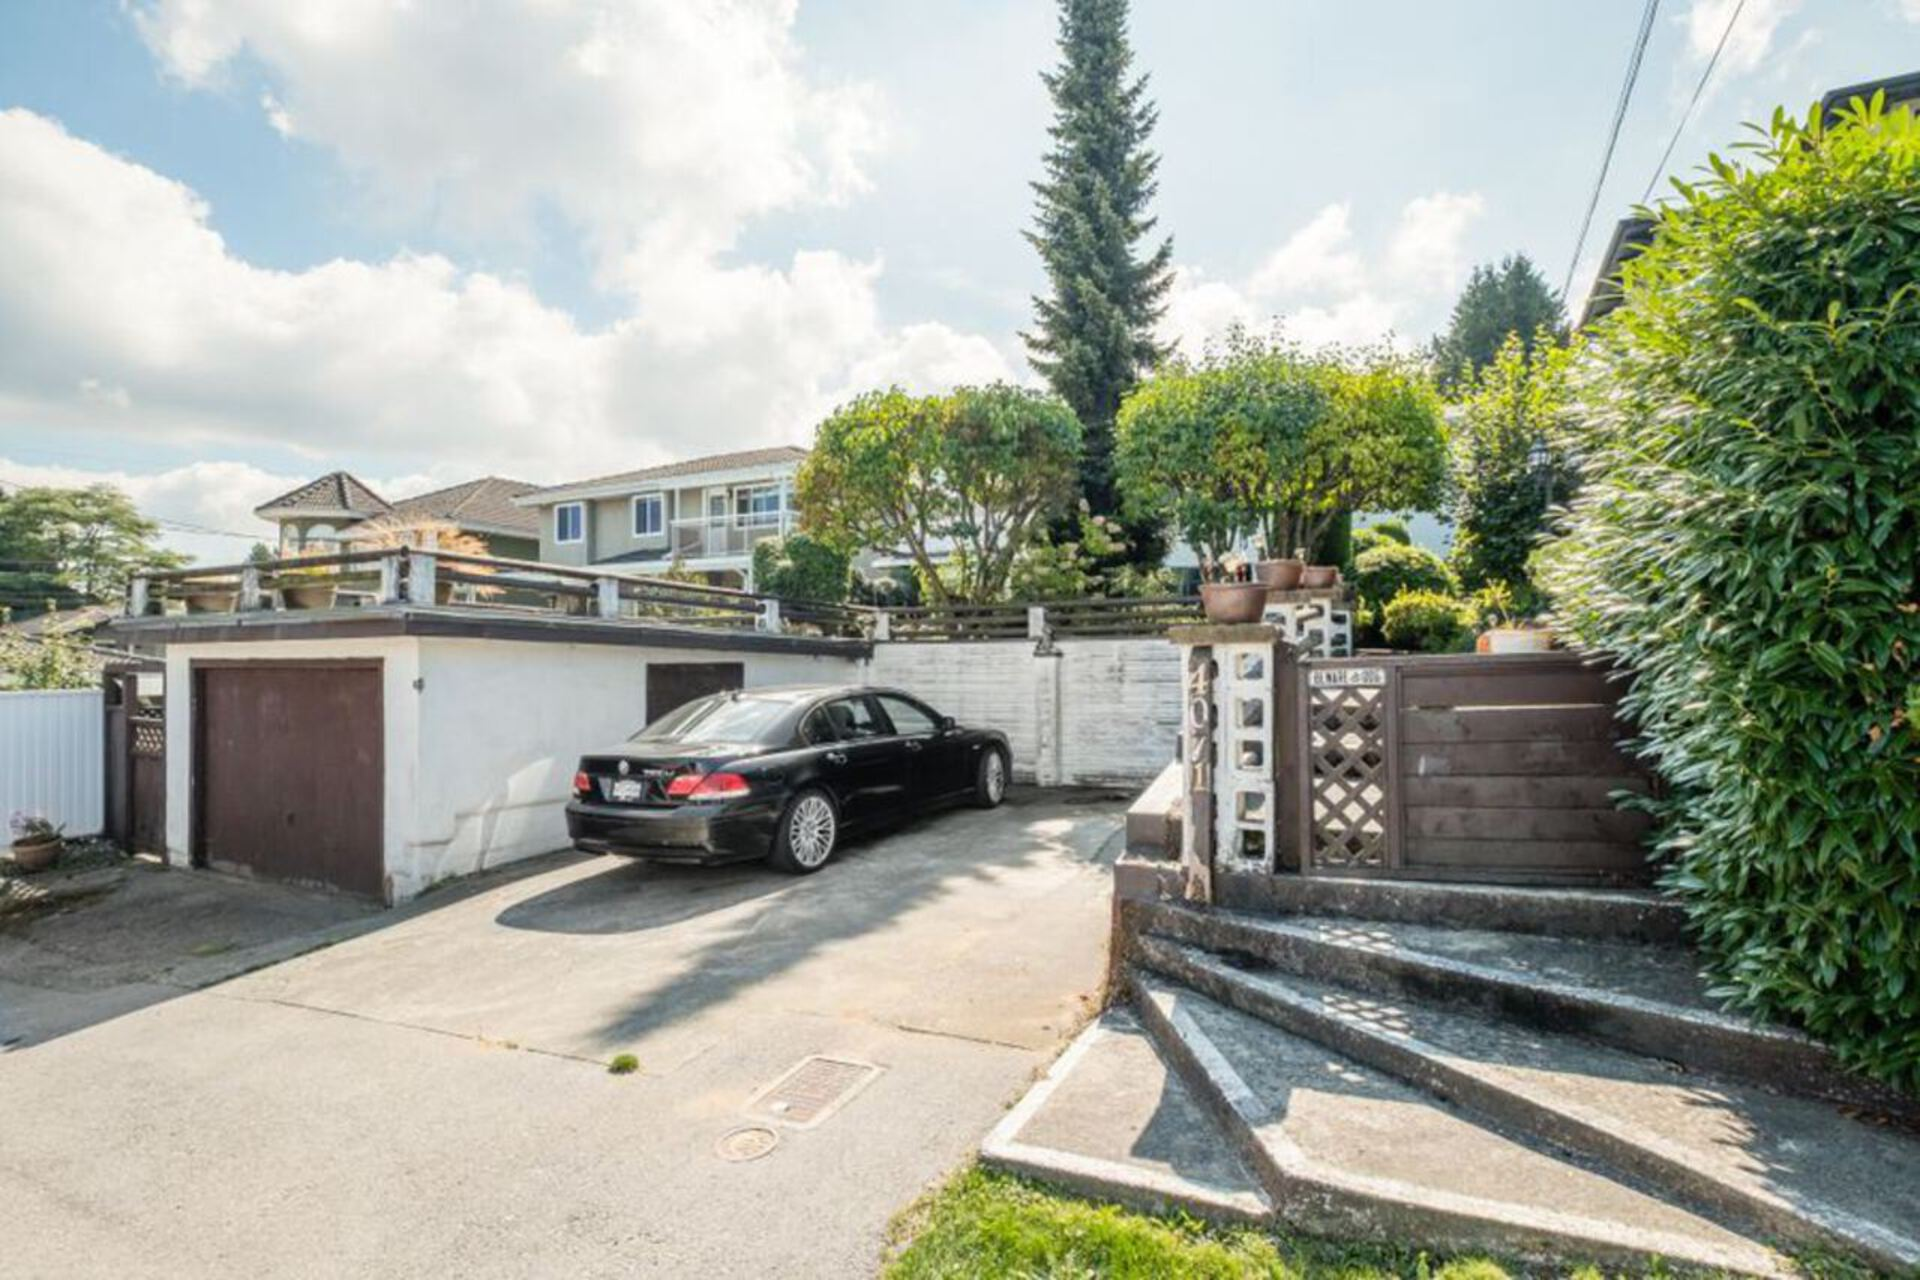 4071-trinity-street-vancouver-heights-burnaby-north-15 at 4071 Trinity Street, Vancouver Heights, Burnaby North